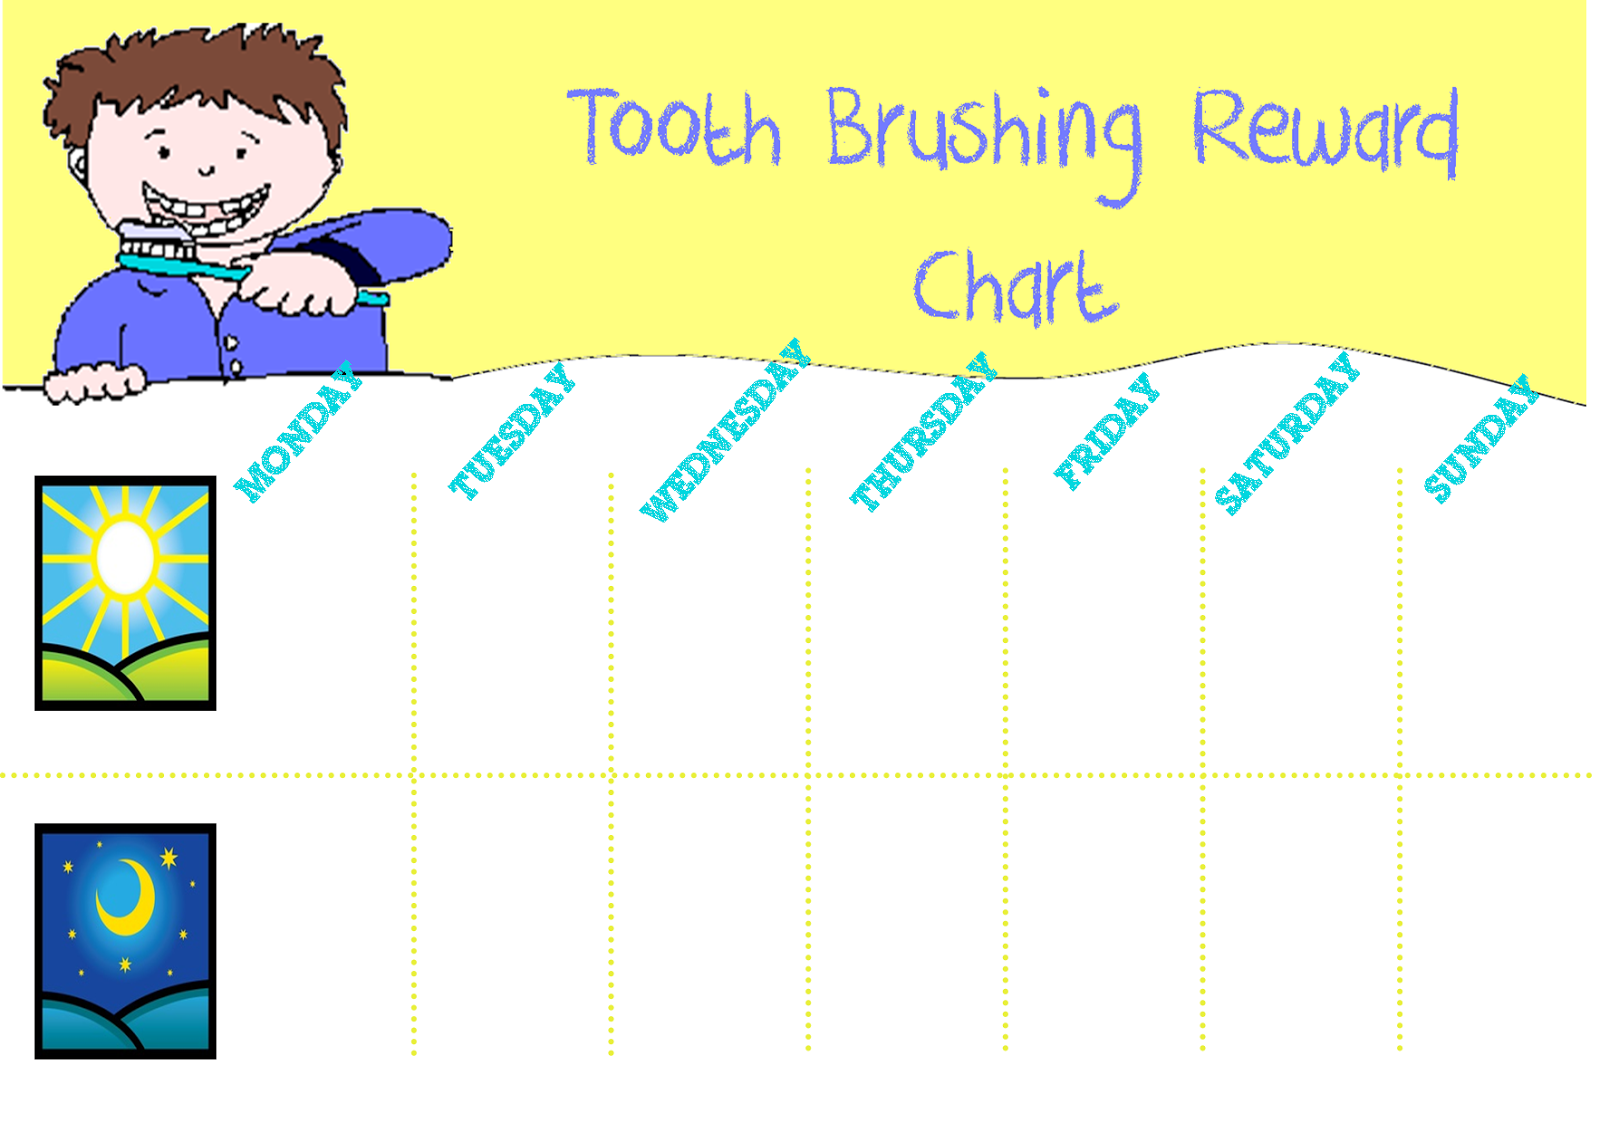 Teeth Brushing Chart  Google Search  Template Charts